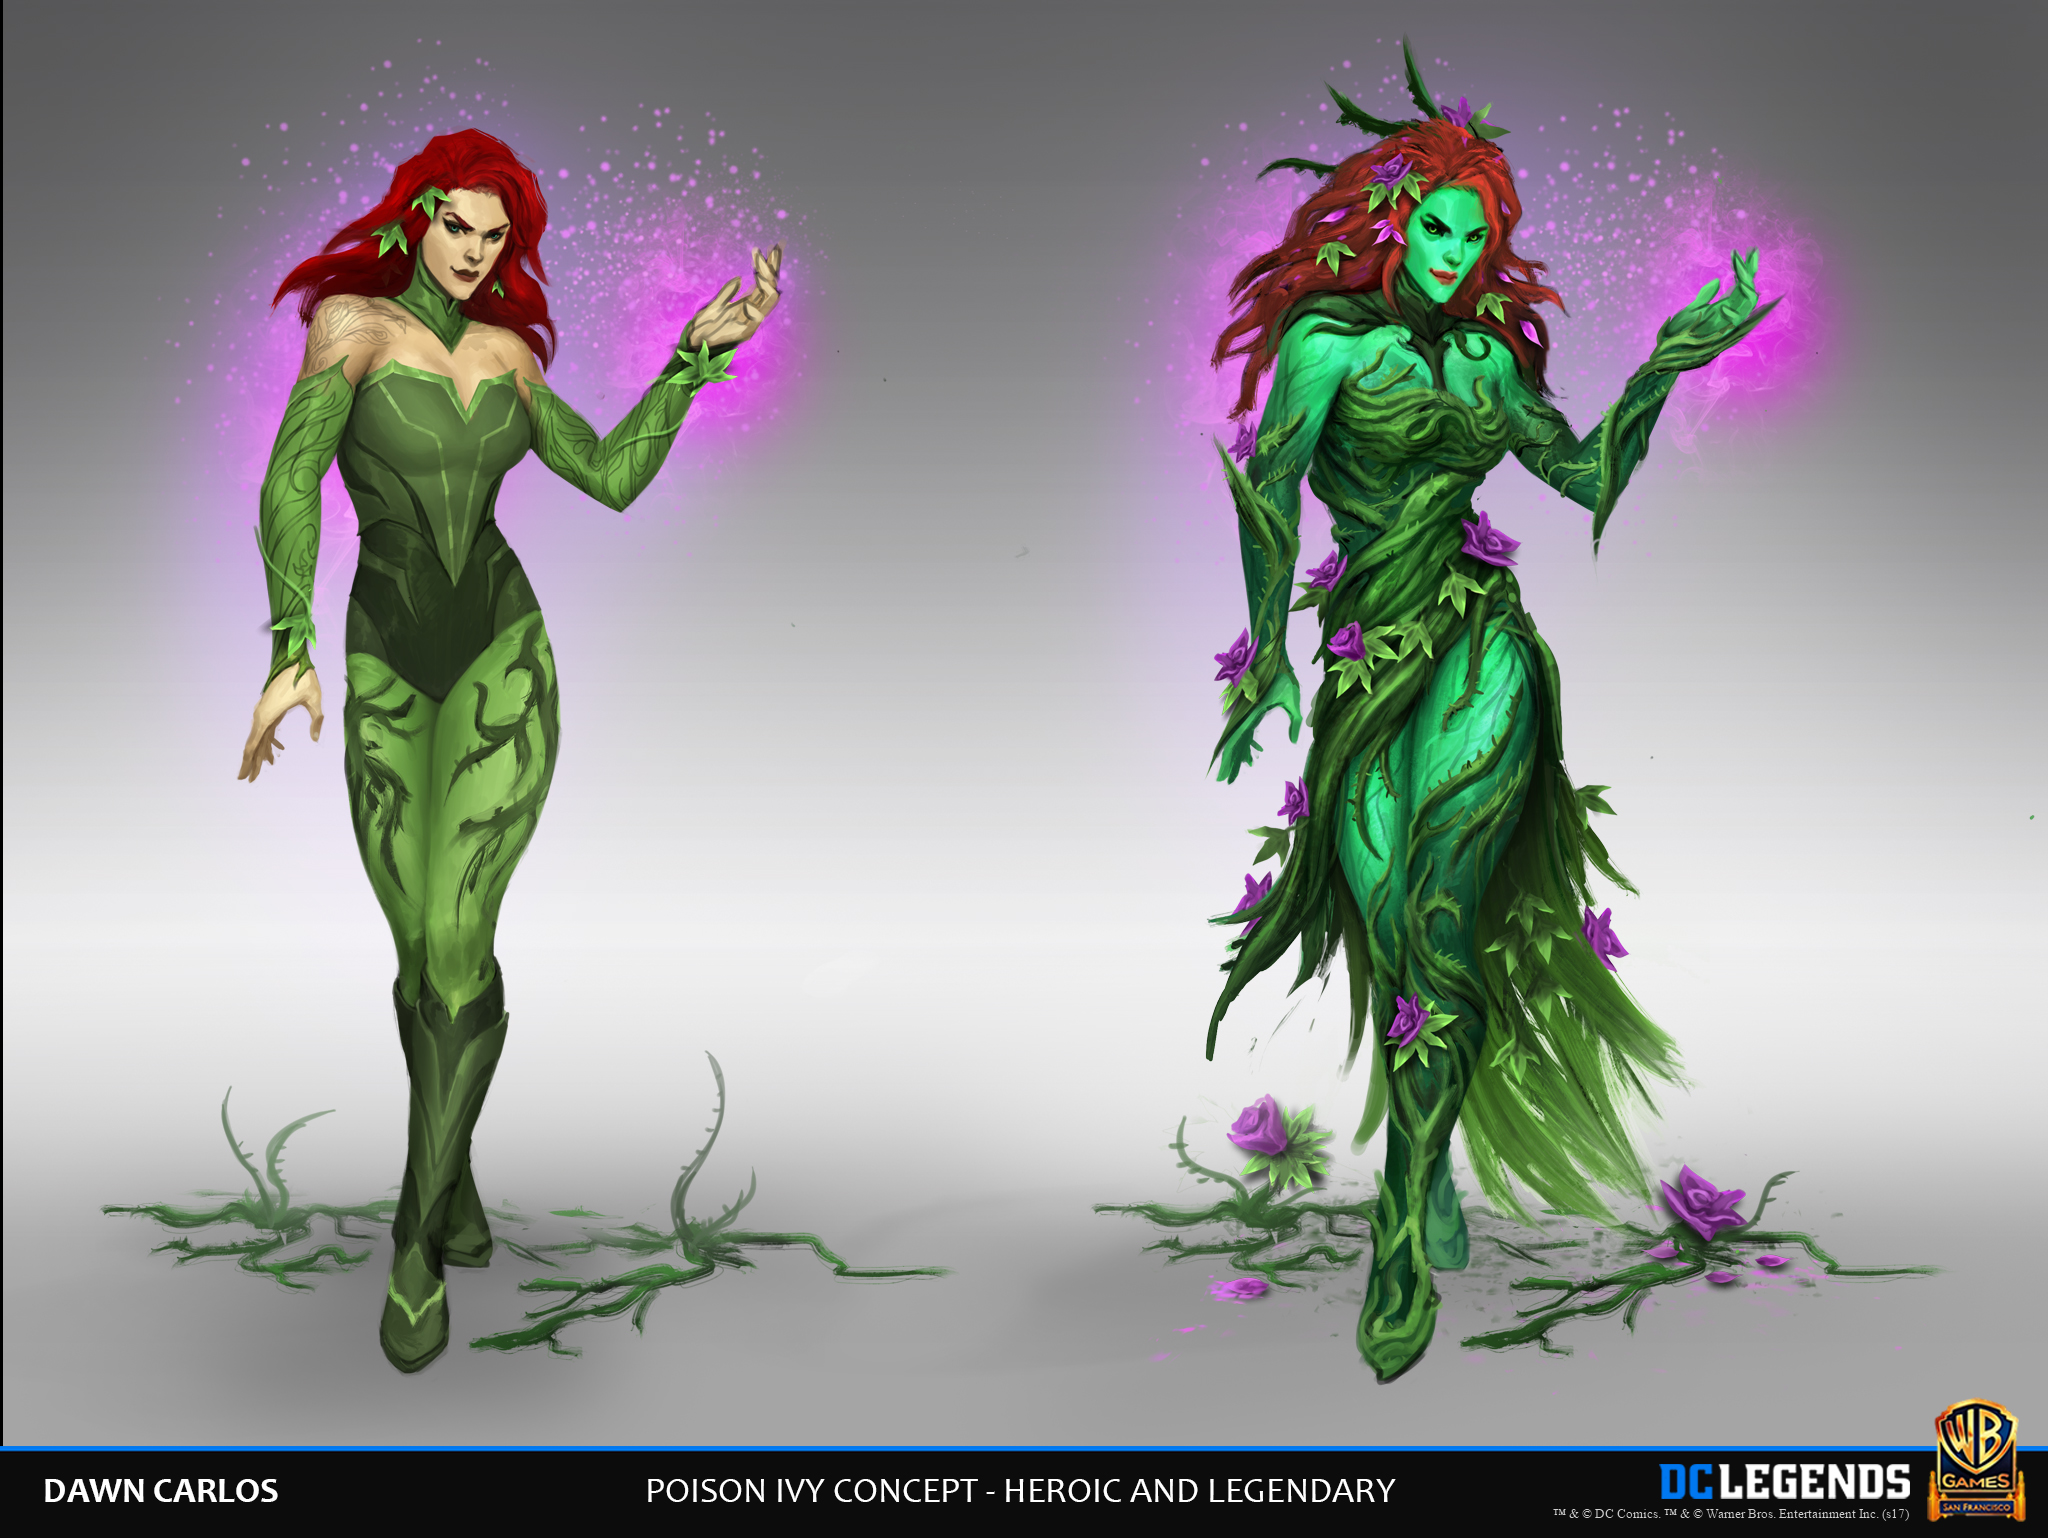 dcLegends_DawnCarlos_submissions_characterConcept_poisonIvy.jpg